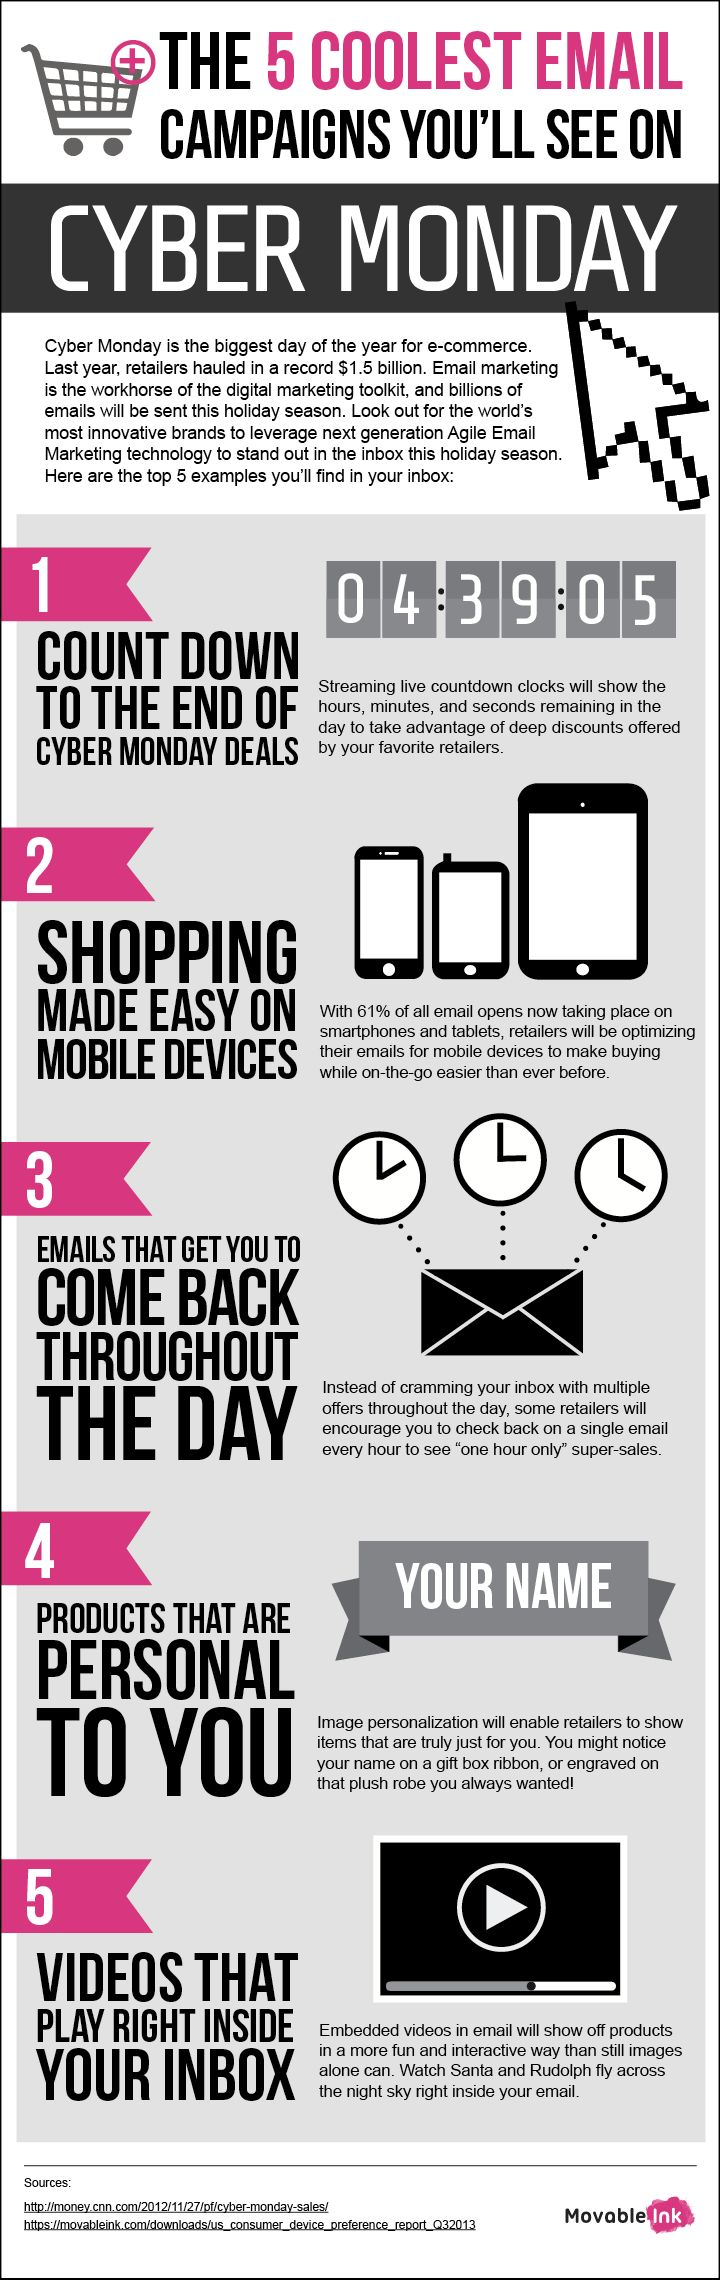 Infographic: The 5 Coolest Email Campaigns You'll See On Cyber Monday